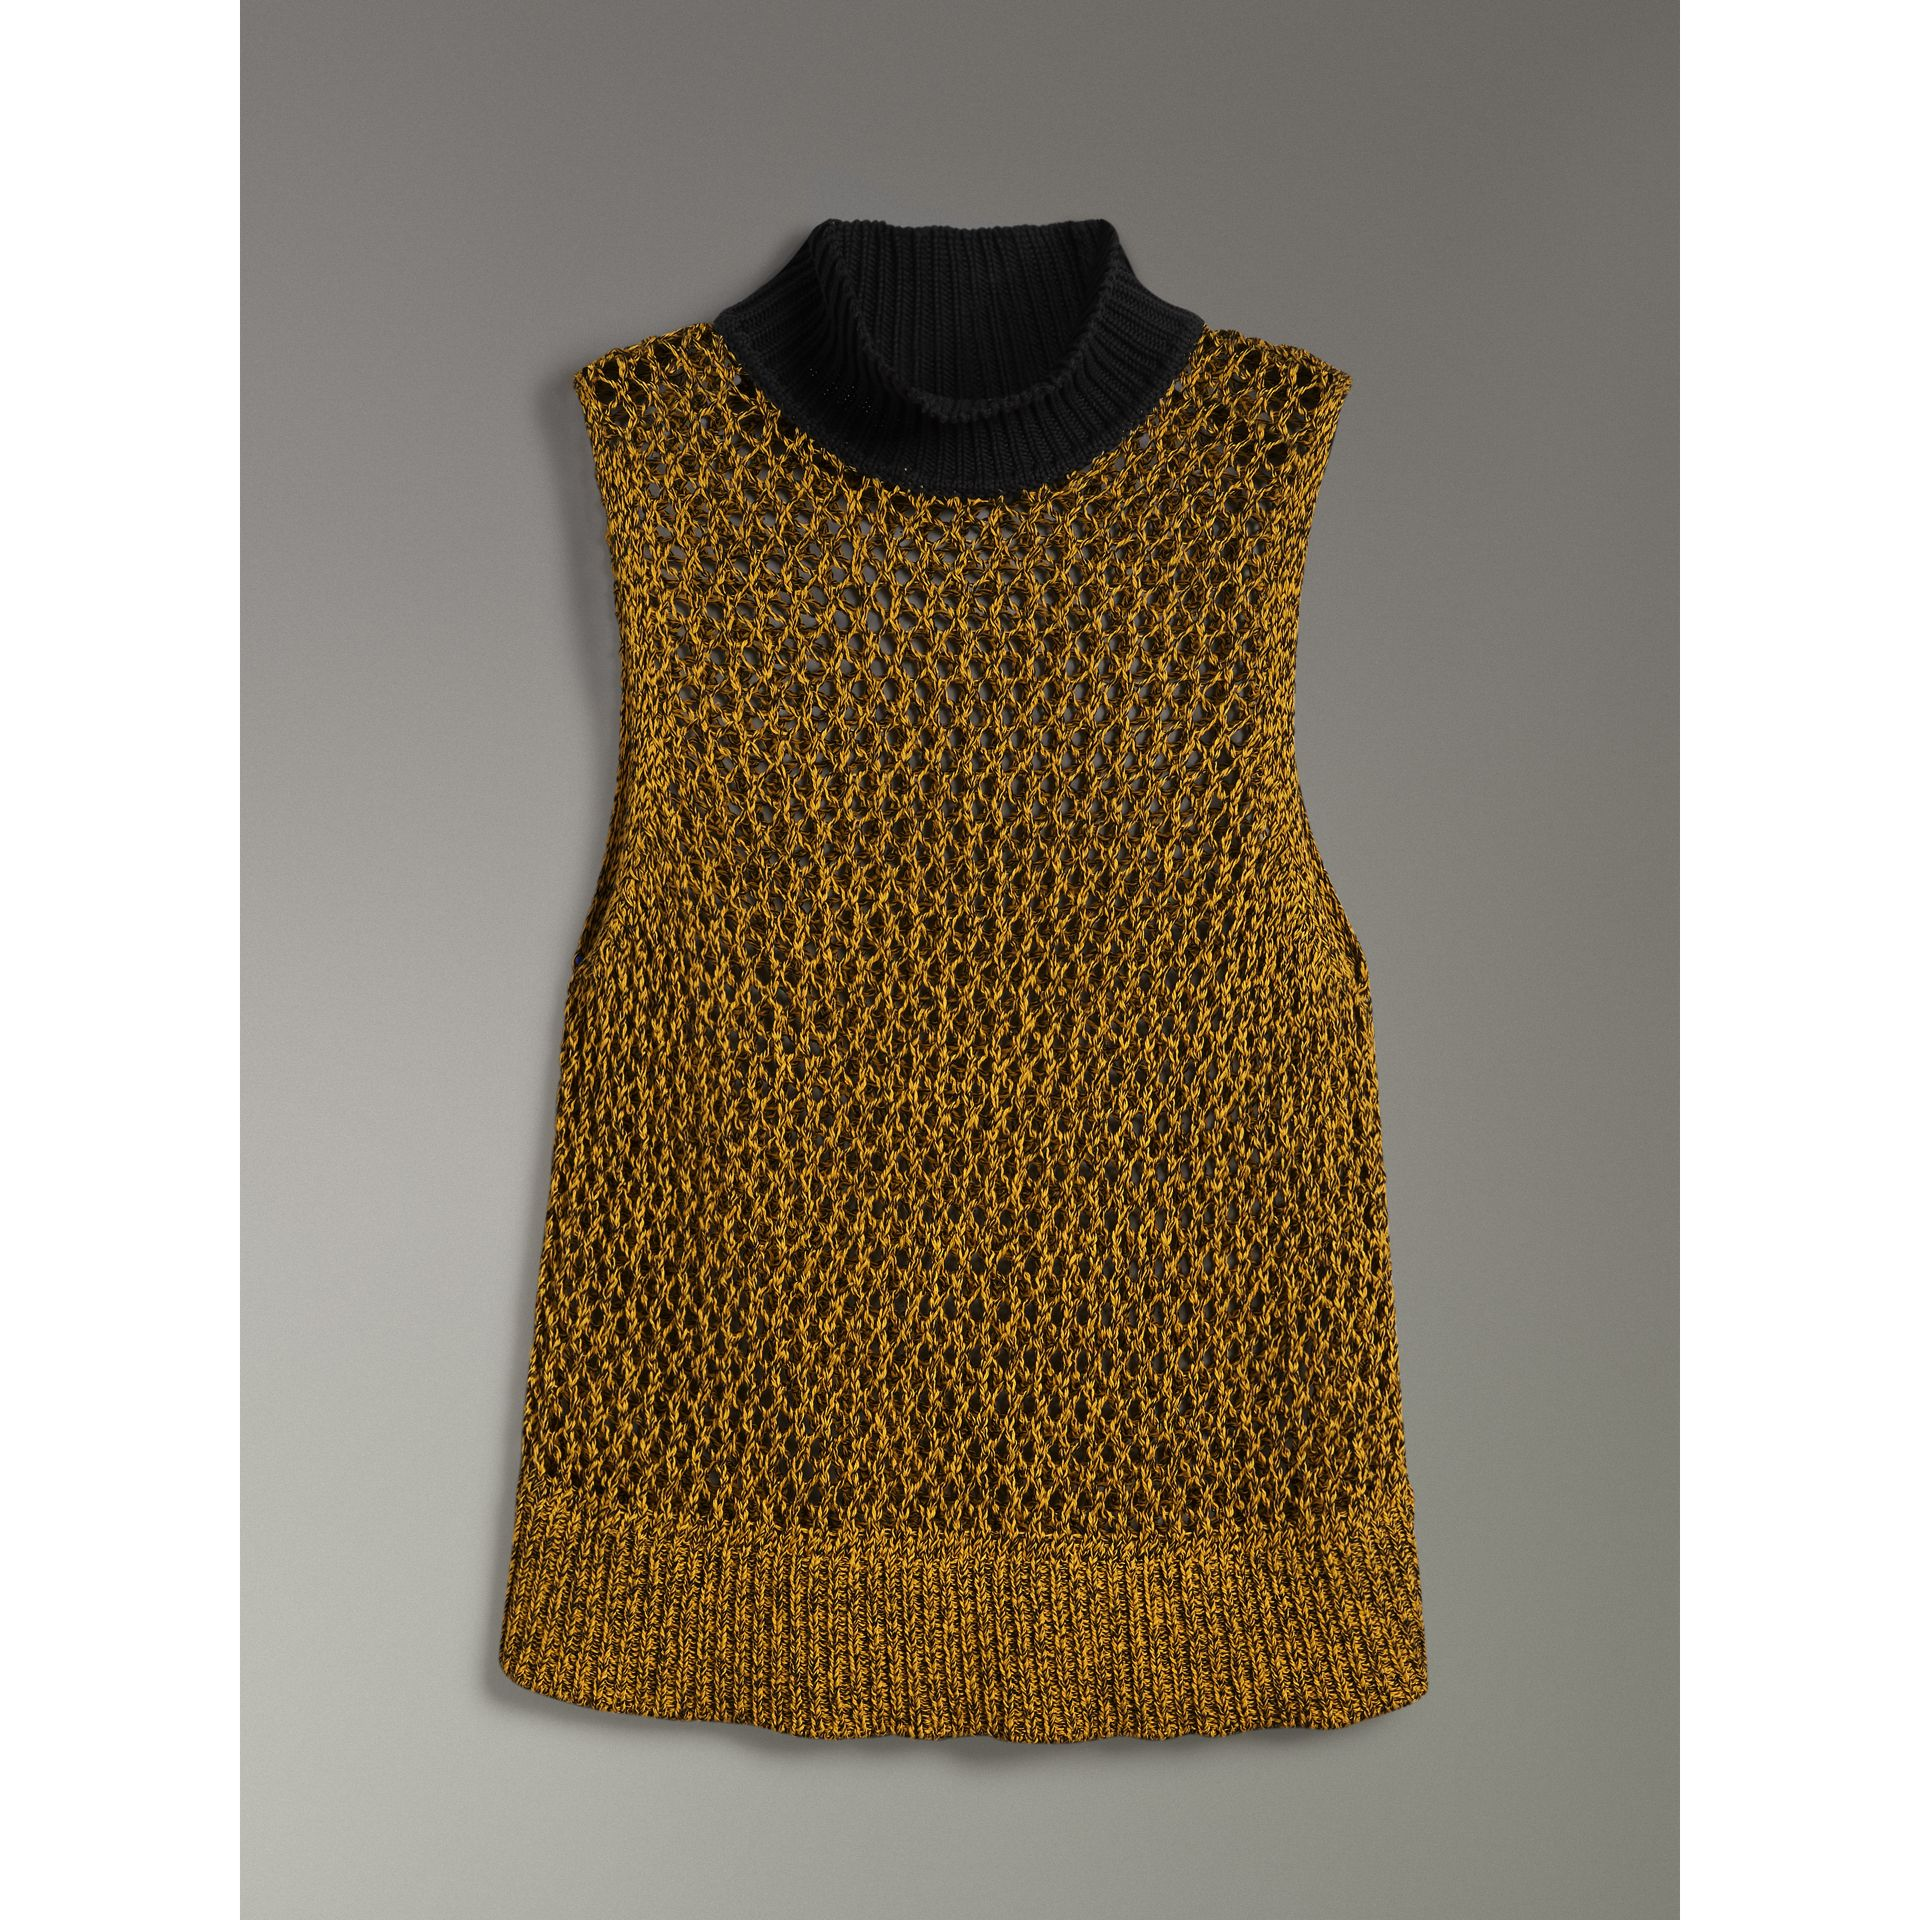 Sleeveless Mesh Knit Turtleneck Top in Vibrant Yellow - Women | Burberry Singapore - gallery image 3